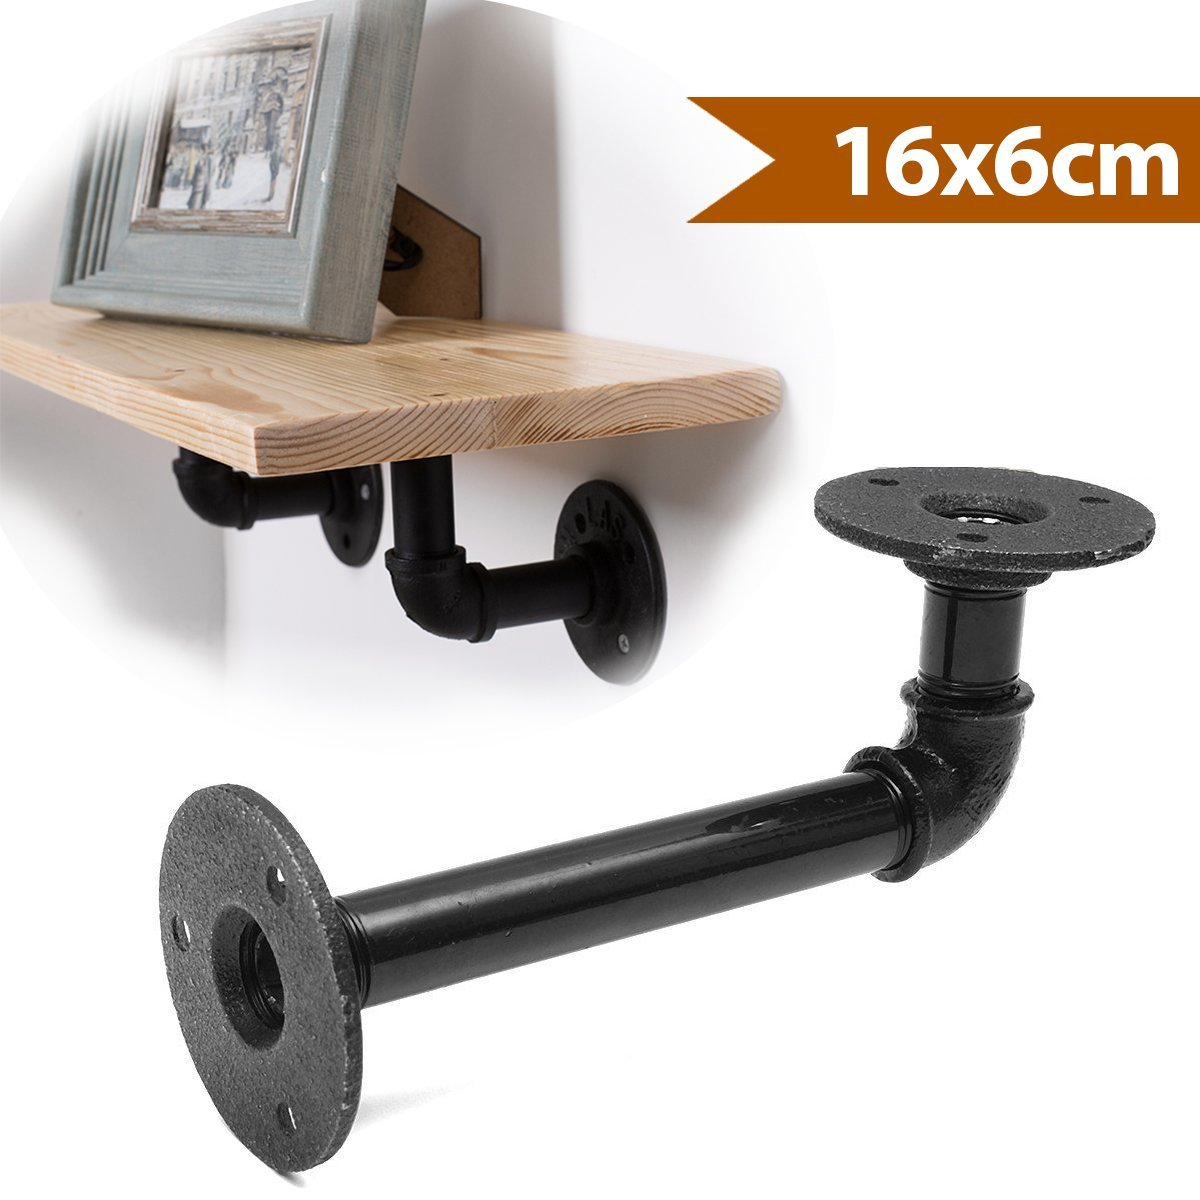 KINGSO 16x6cm Industrial Pipe Shelving Brackets Hardware Support Rustic Hanging Wall Mount Heavy Duty Farmhouse with Screw 1PC Only